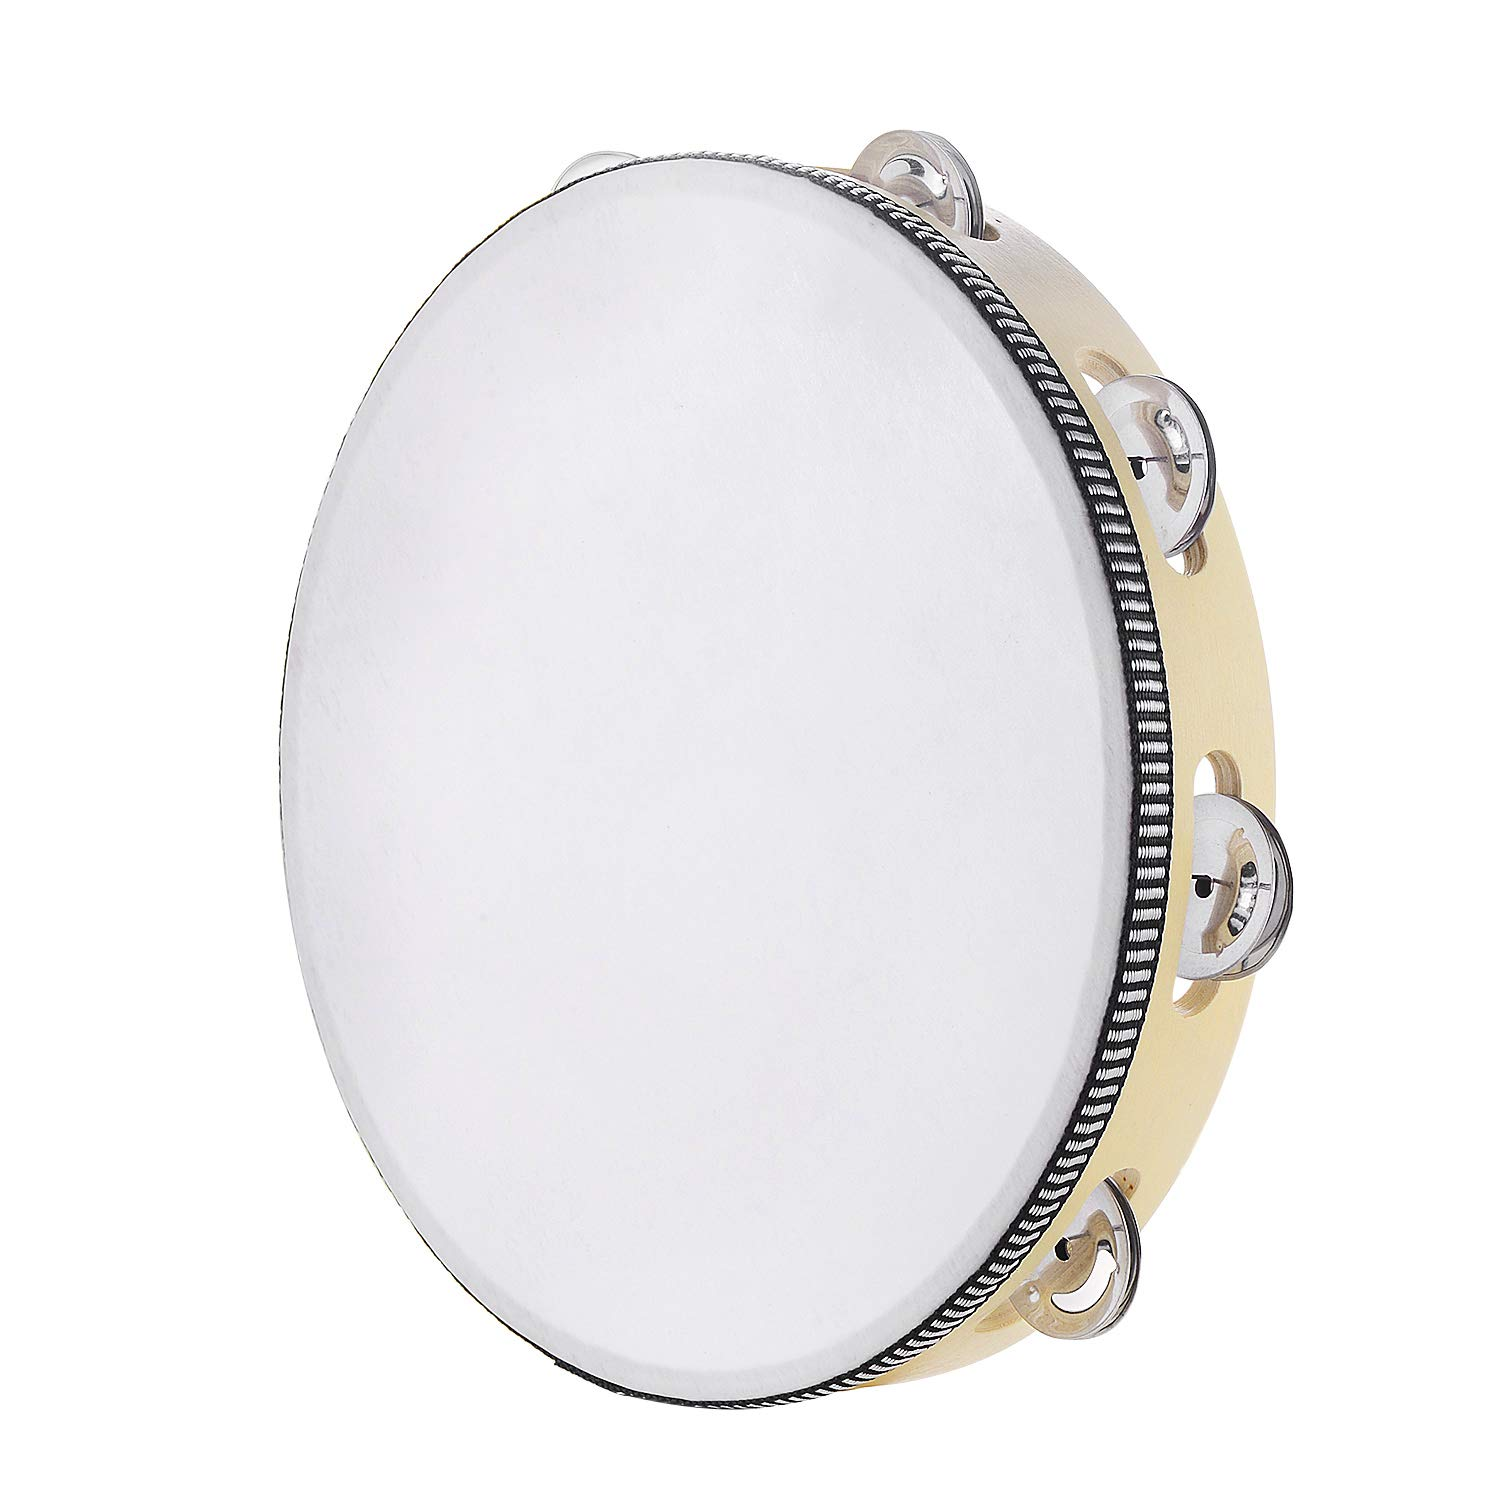 Tambourine for adults 10 inch Hand Held Drum Bell Birch Metal Jingles Percussion Gift Musical Educational Instrument for Church KTV Party (10 inch)